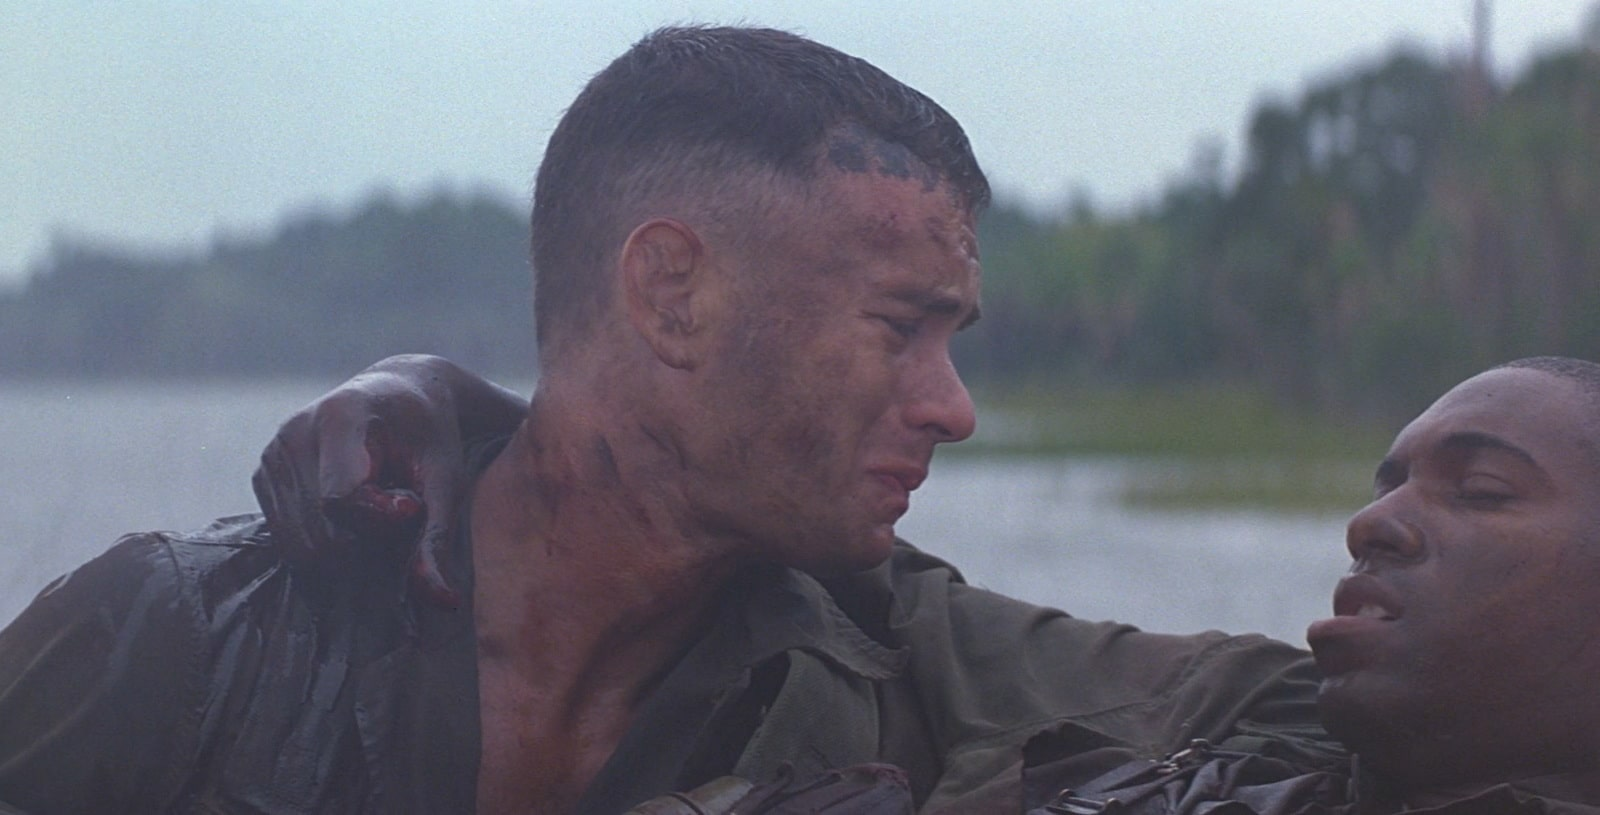 Forrest Gump and Bubba dying